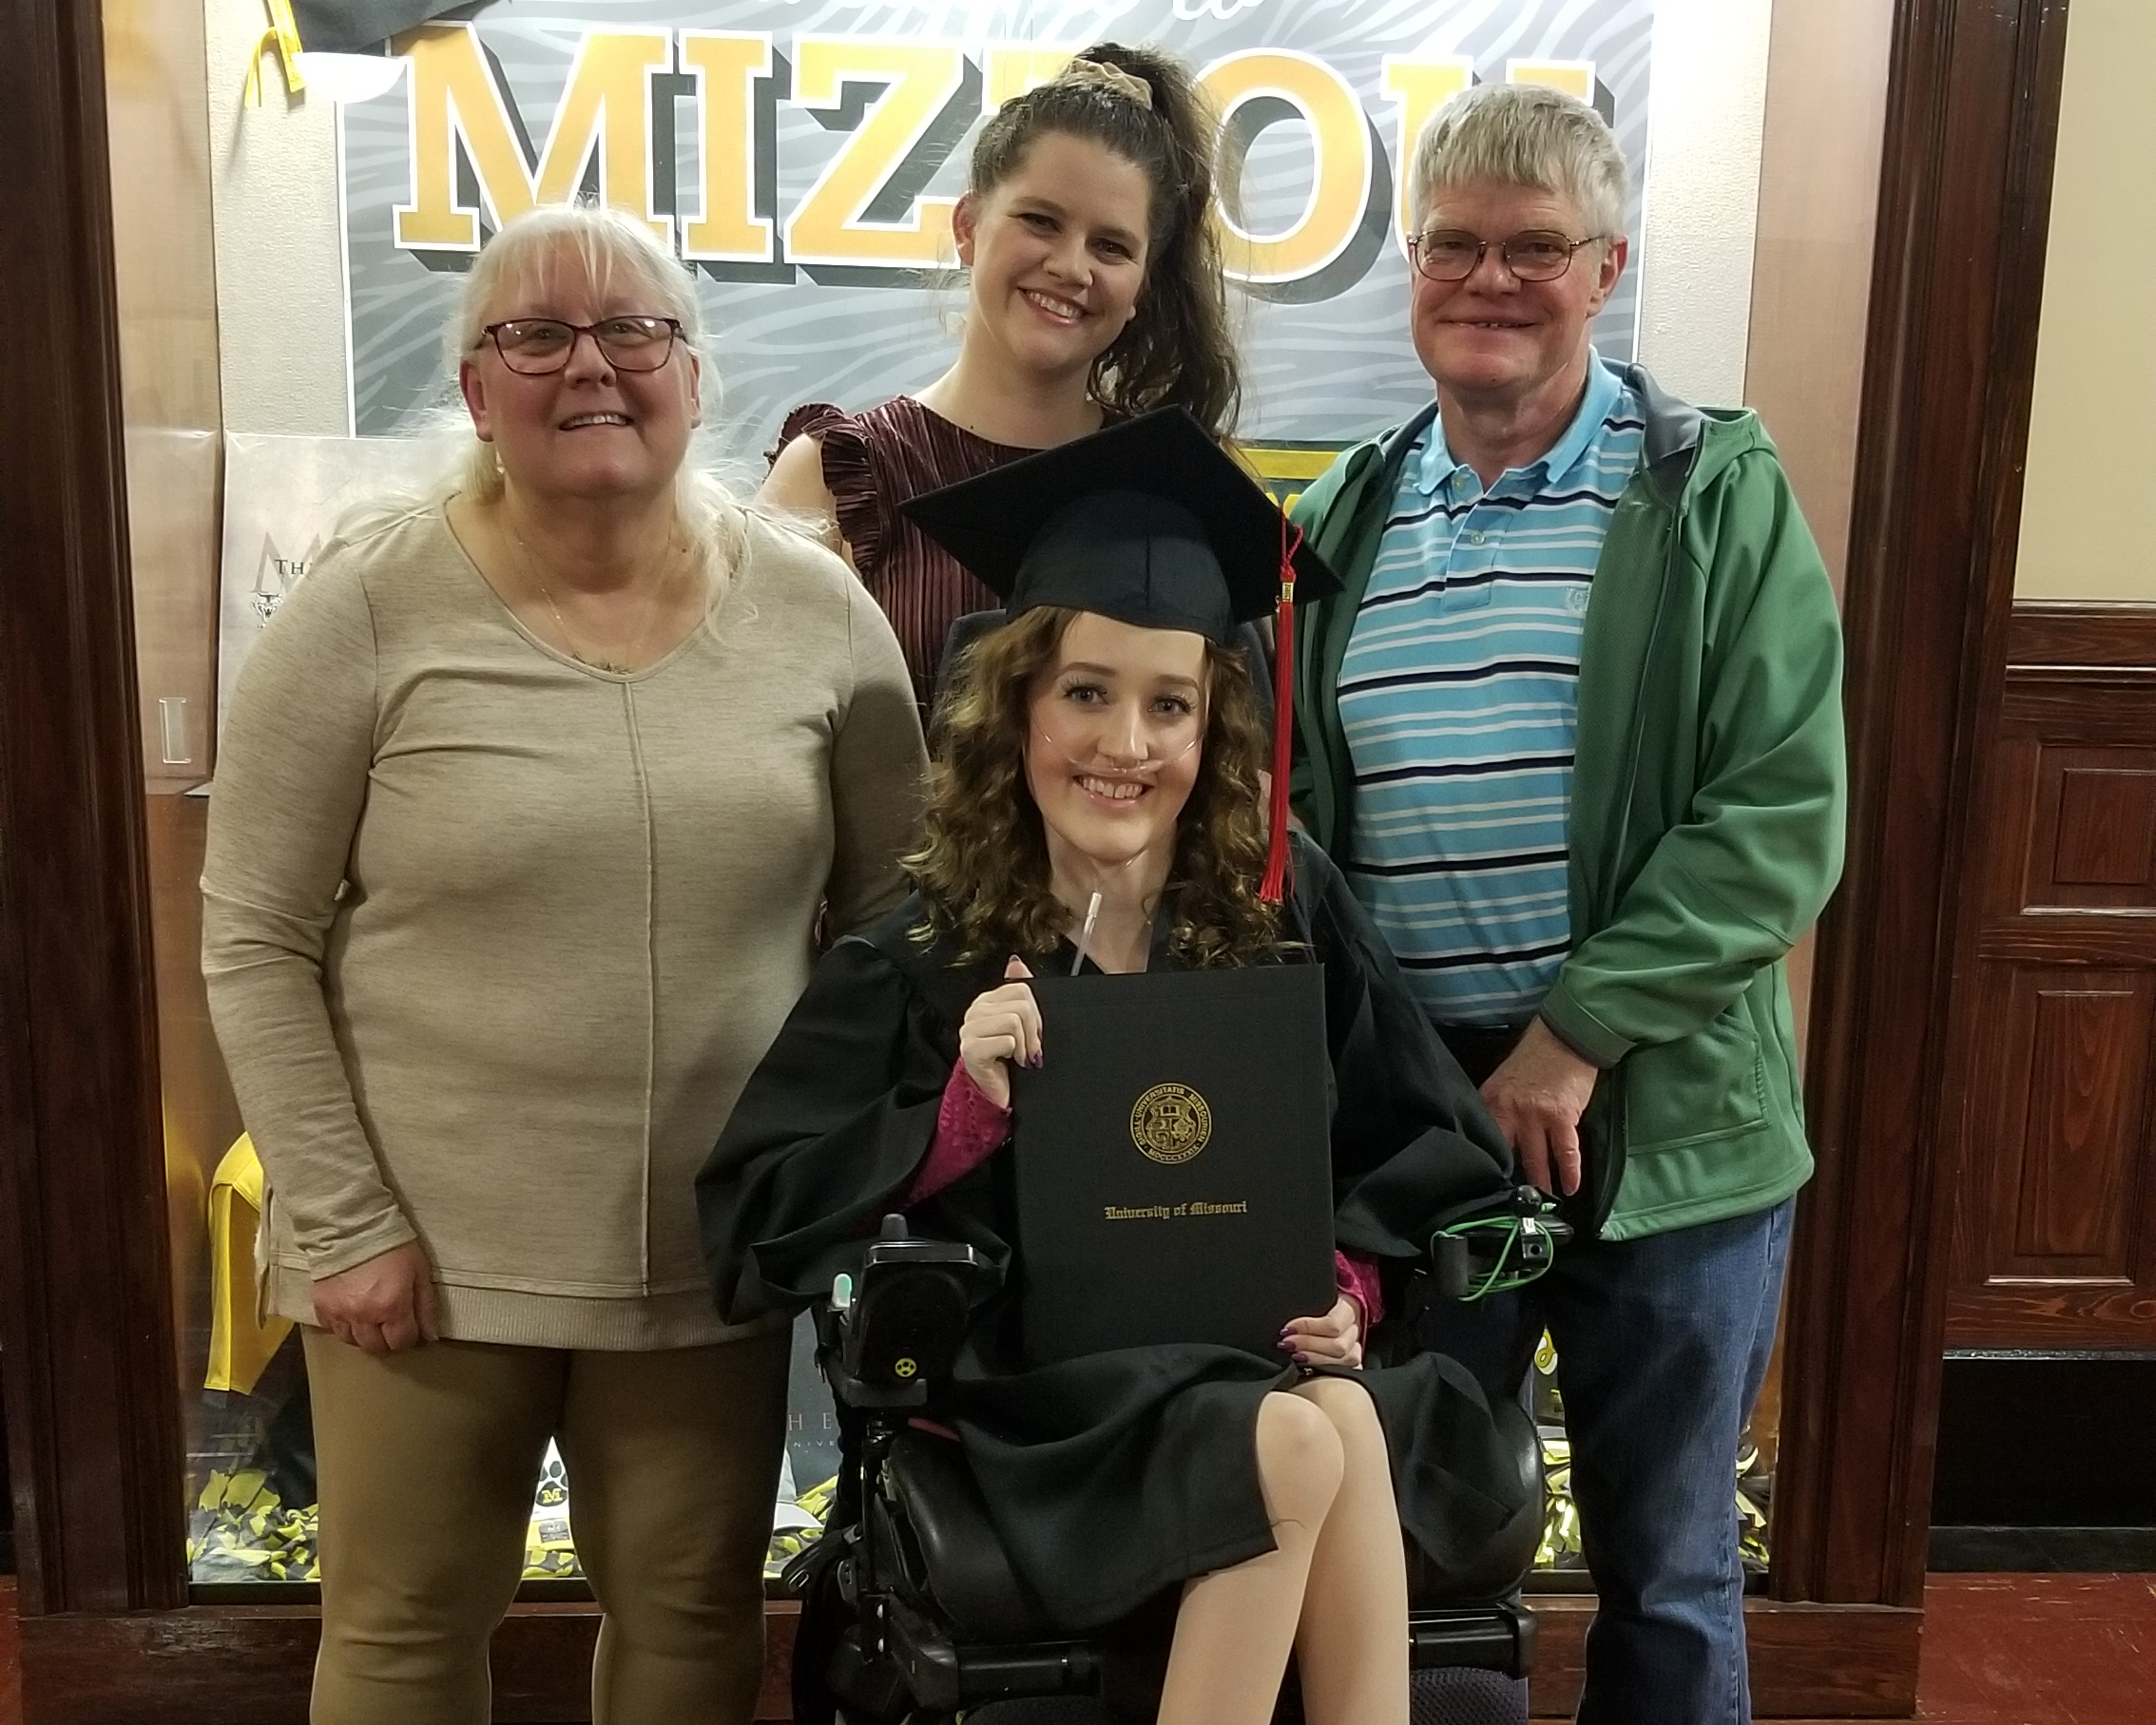 Madi Lawson with the Smith family at her December graduation from the University of Missouri School of Journalism.